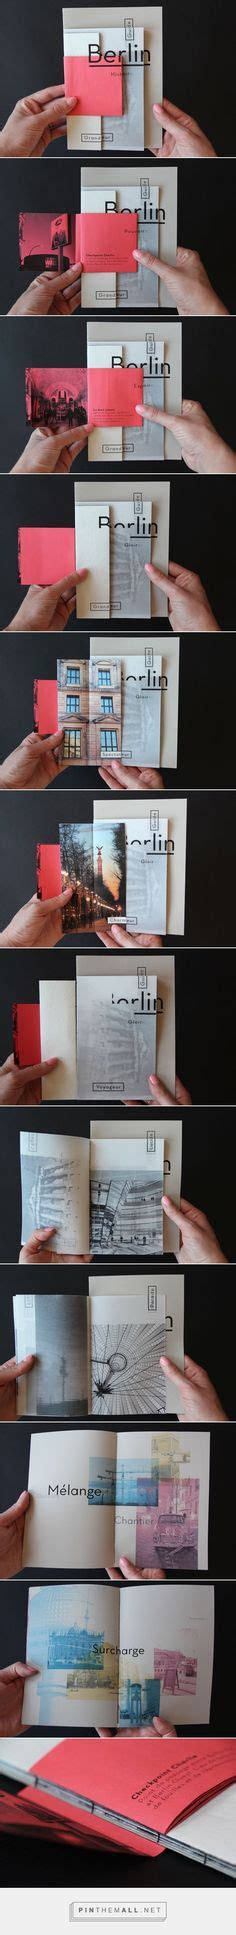 paginas como designspiration french fold with interior color binding pinterest